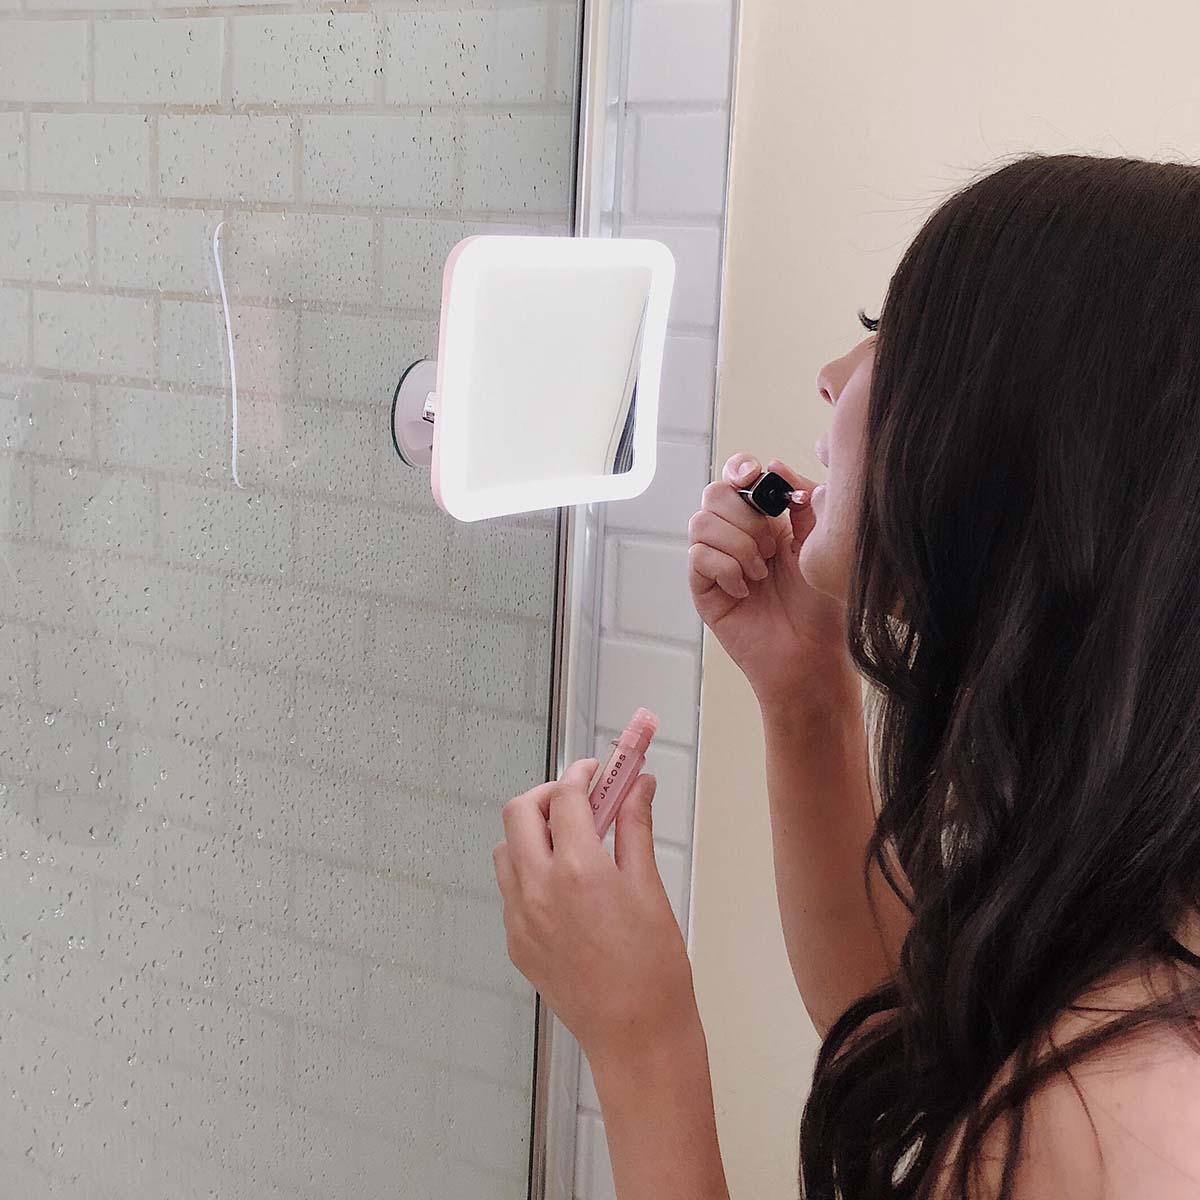 Mira 2 10X magnifying mirror never lets you miss a single detail again.